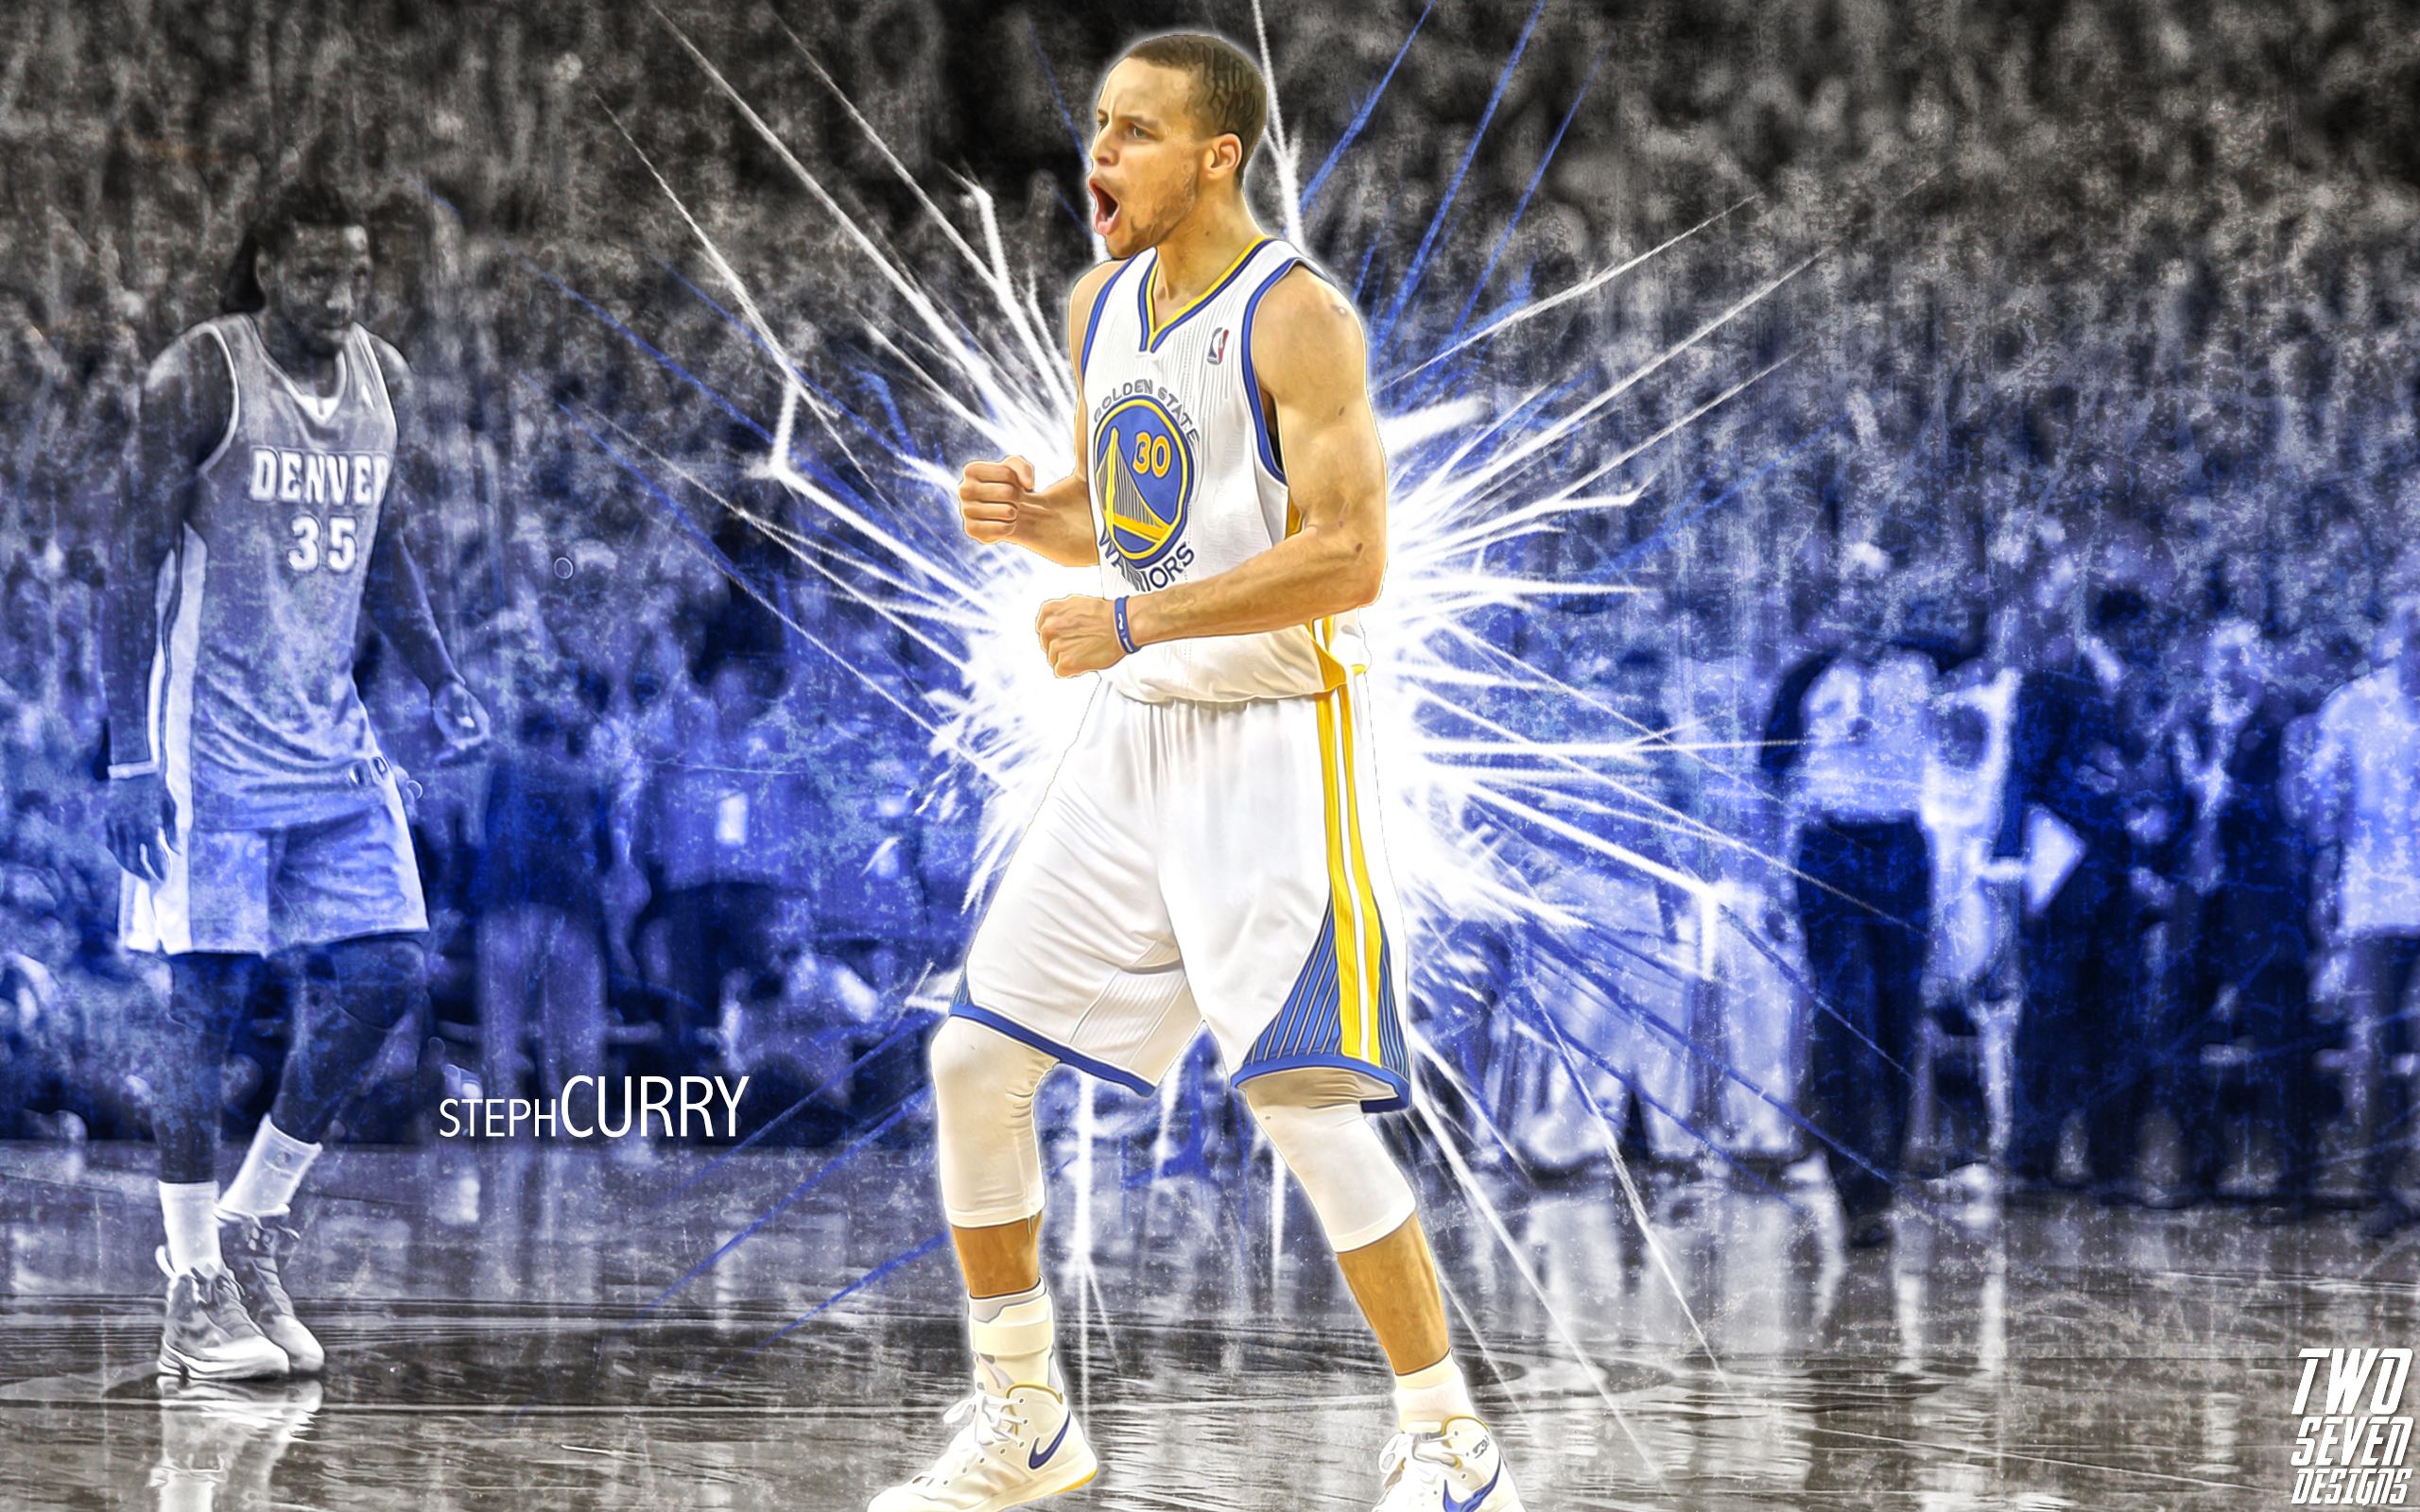 Stephen Curry Wallpaper Hd 2014 Nba Wallpapers Two Seven Designs